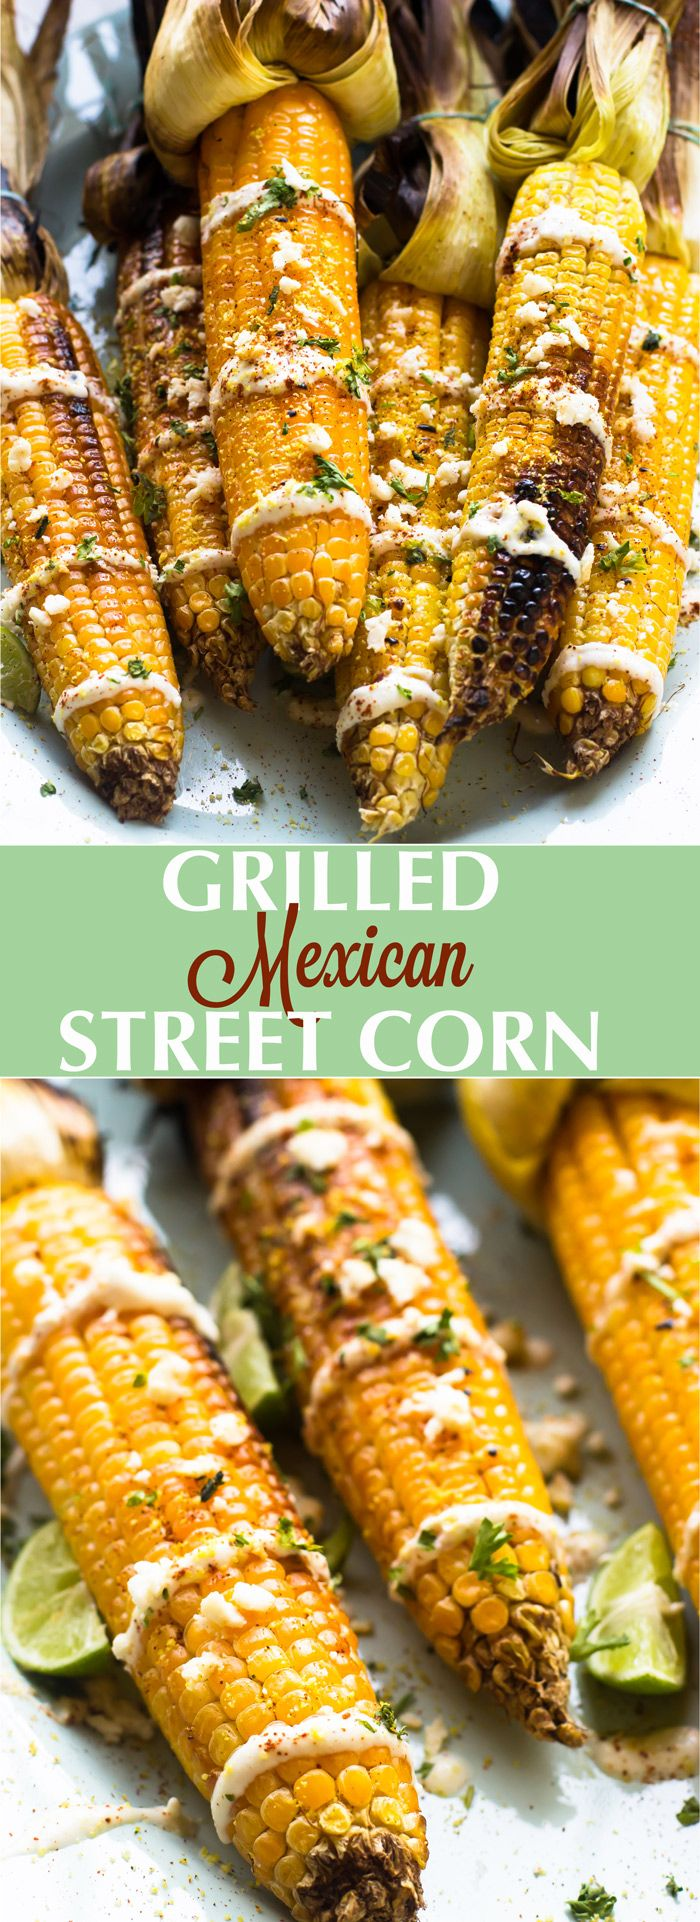 This Grilled Mexican Street Corn is grilled to smoky perfection then smothered in a delicious and creamy vegan mayonnaise blend and Lime Crema. It's the best side dish!